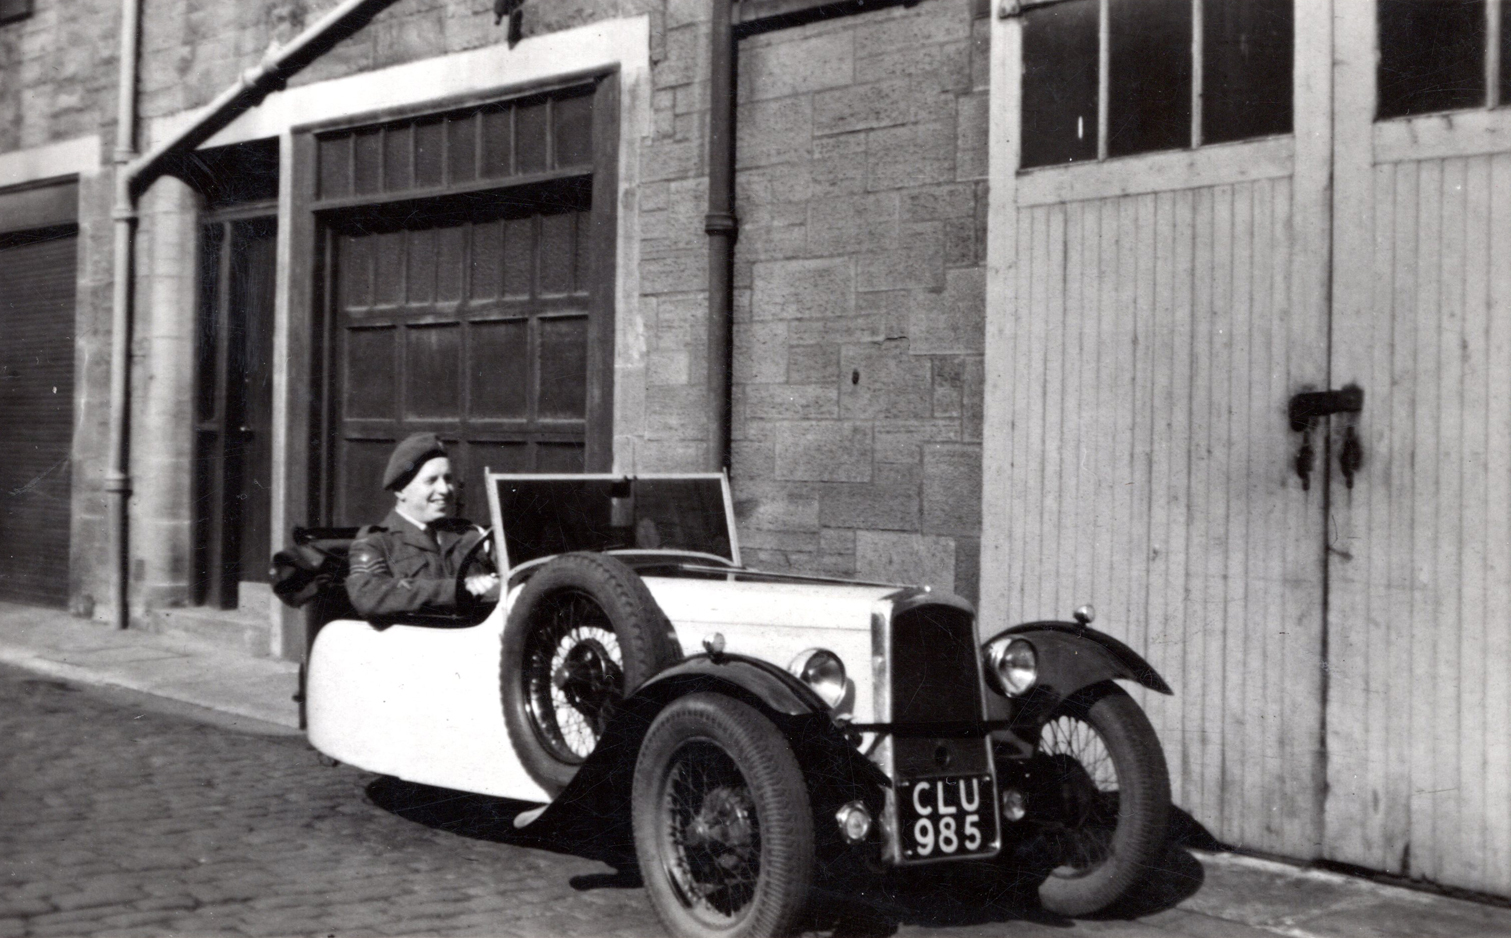 Young Man In Cadet Uniform Behind Wheel Of Three Wheeled Car In Thirlestane Lane c.1950